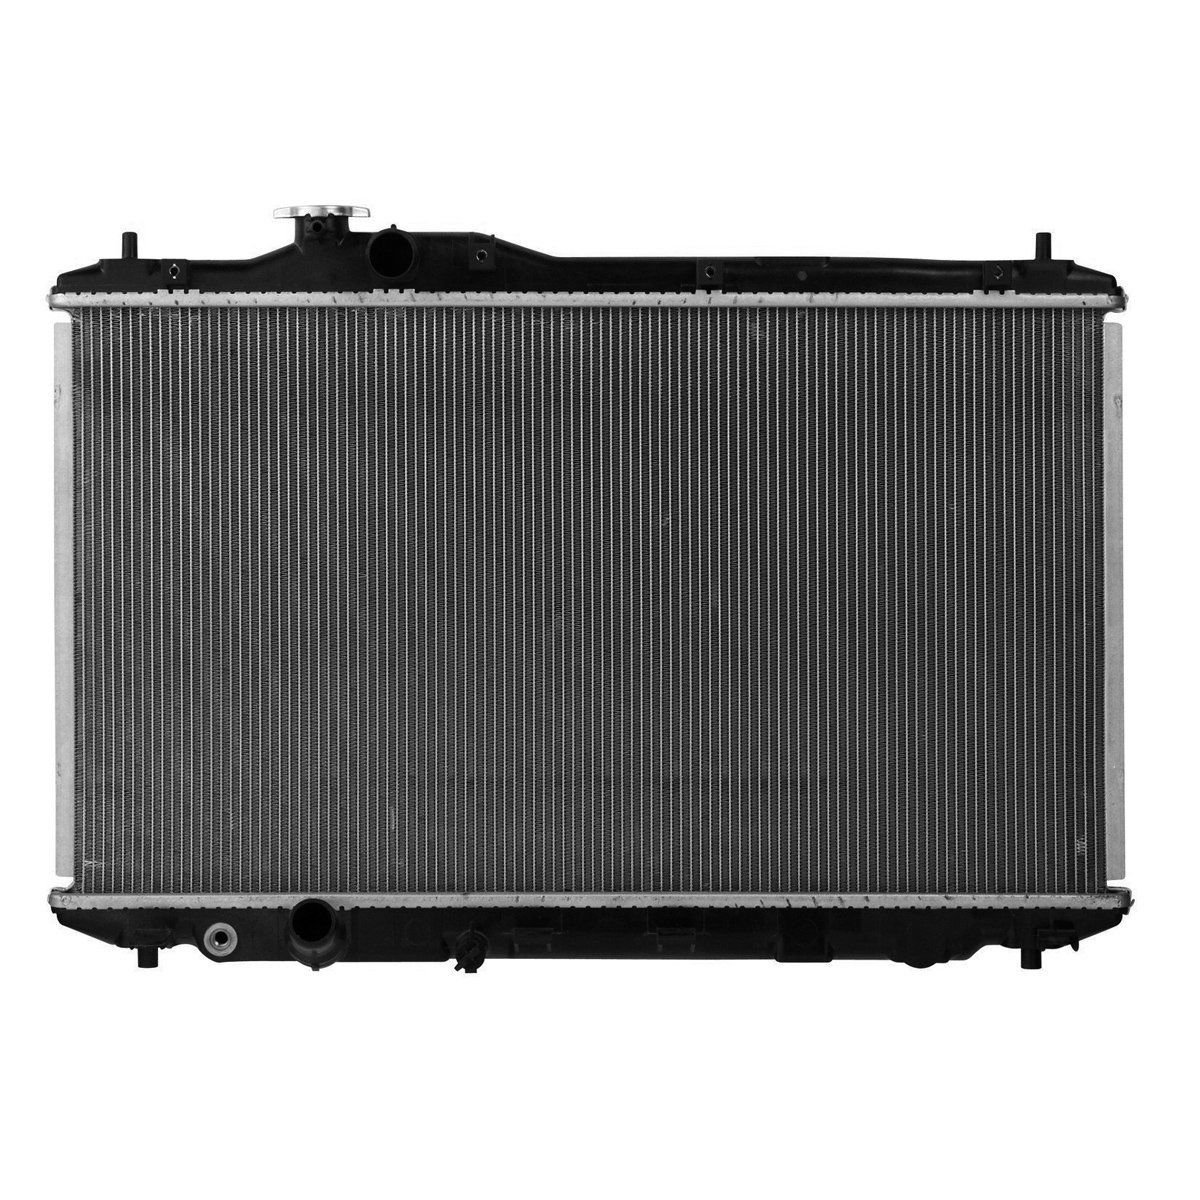 ECCPP Radiator 13221 for 2012-2015 Honda Civic 2013-2015 Acura ILX 2.4L 1.8L by ECCPP